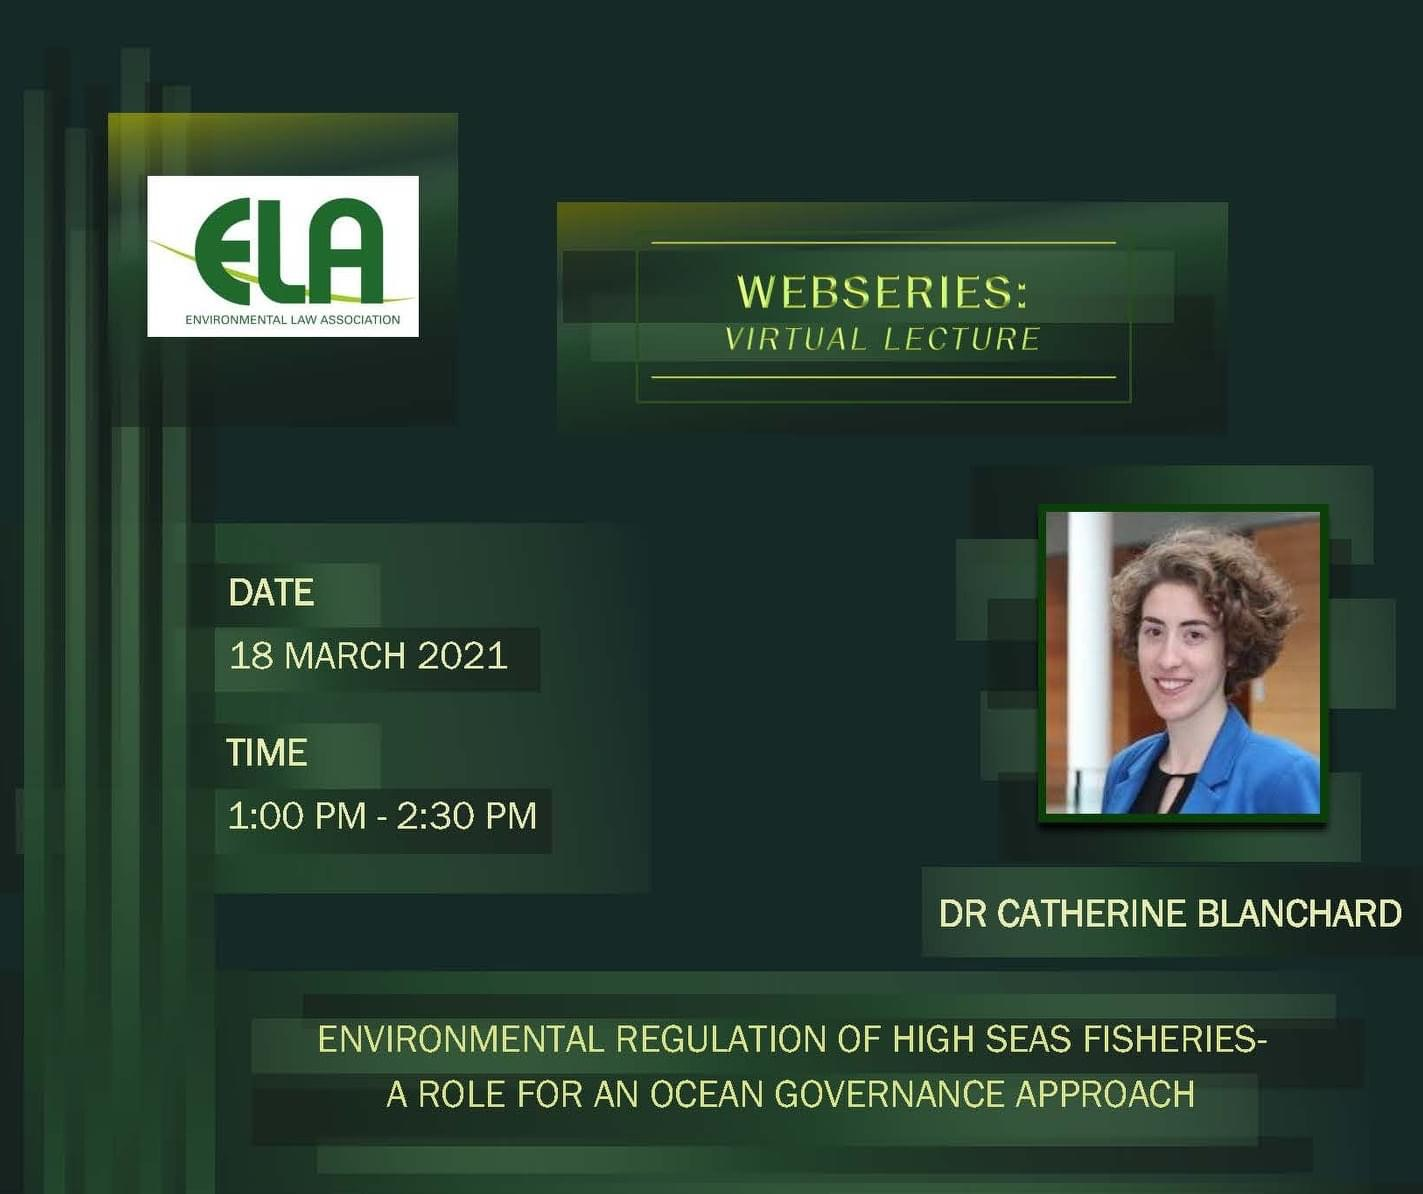 ELA Virtual Lecture by Dr Catherine Blanchard: Environmental Regulation of High Seas Fisheries - A Role for an Ocean Governance Approach